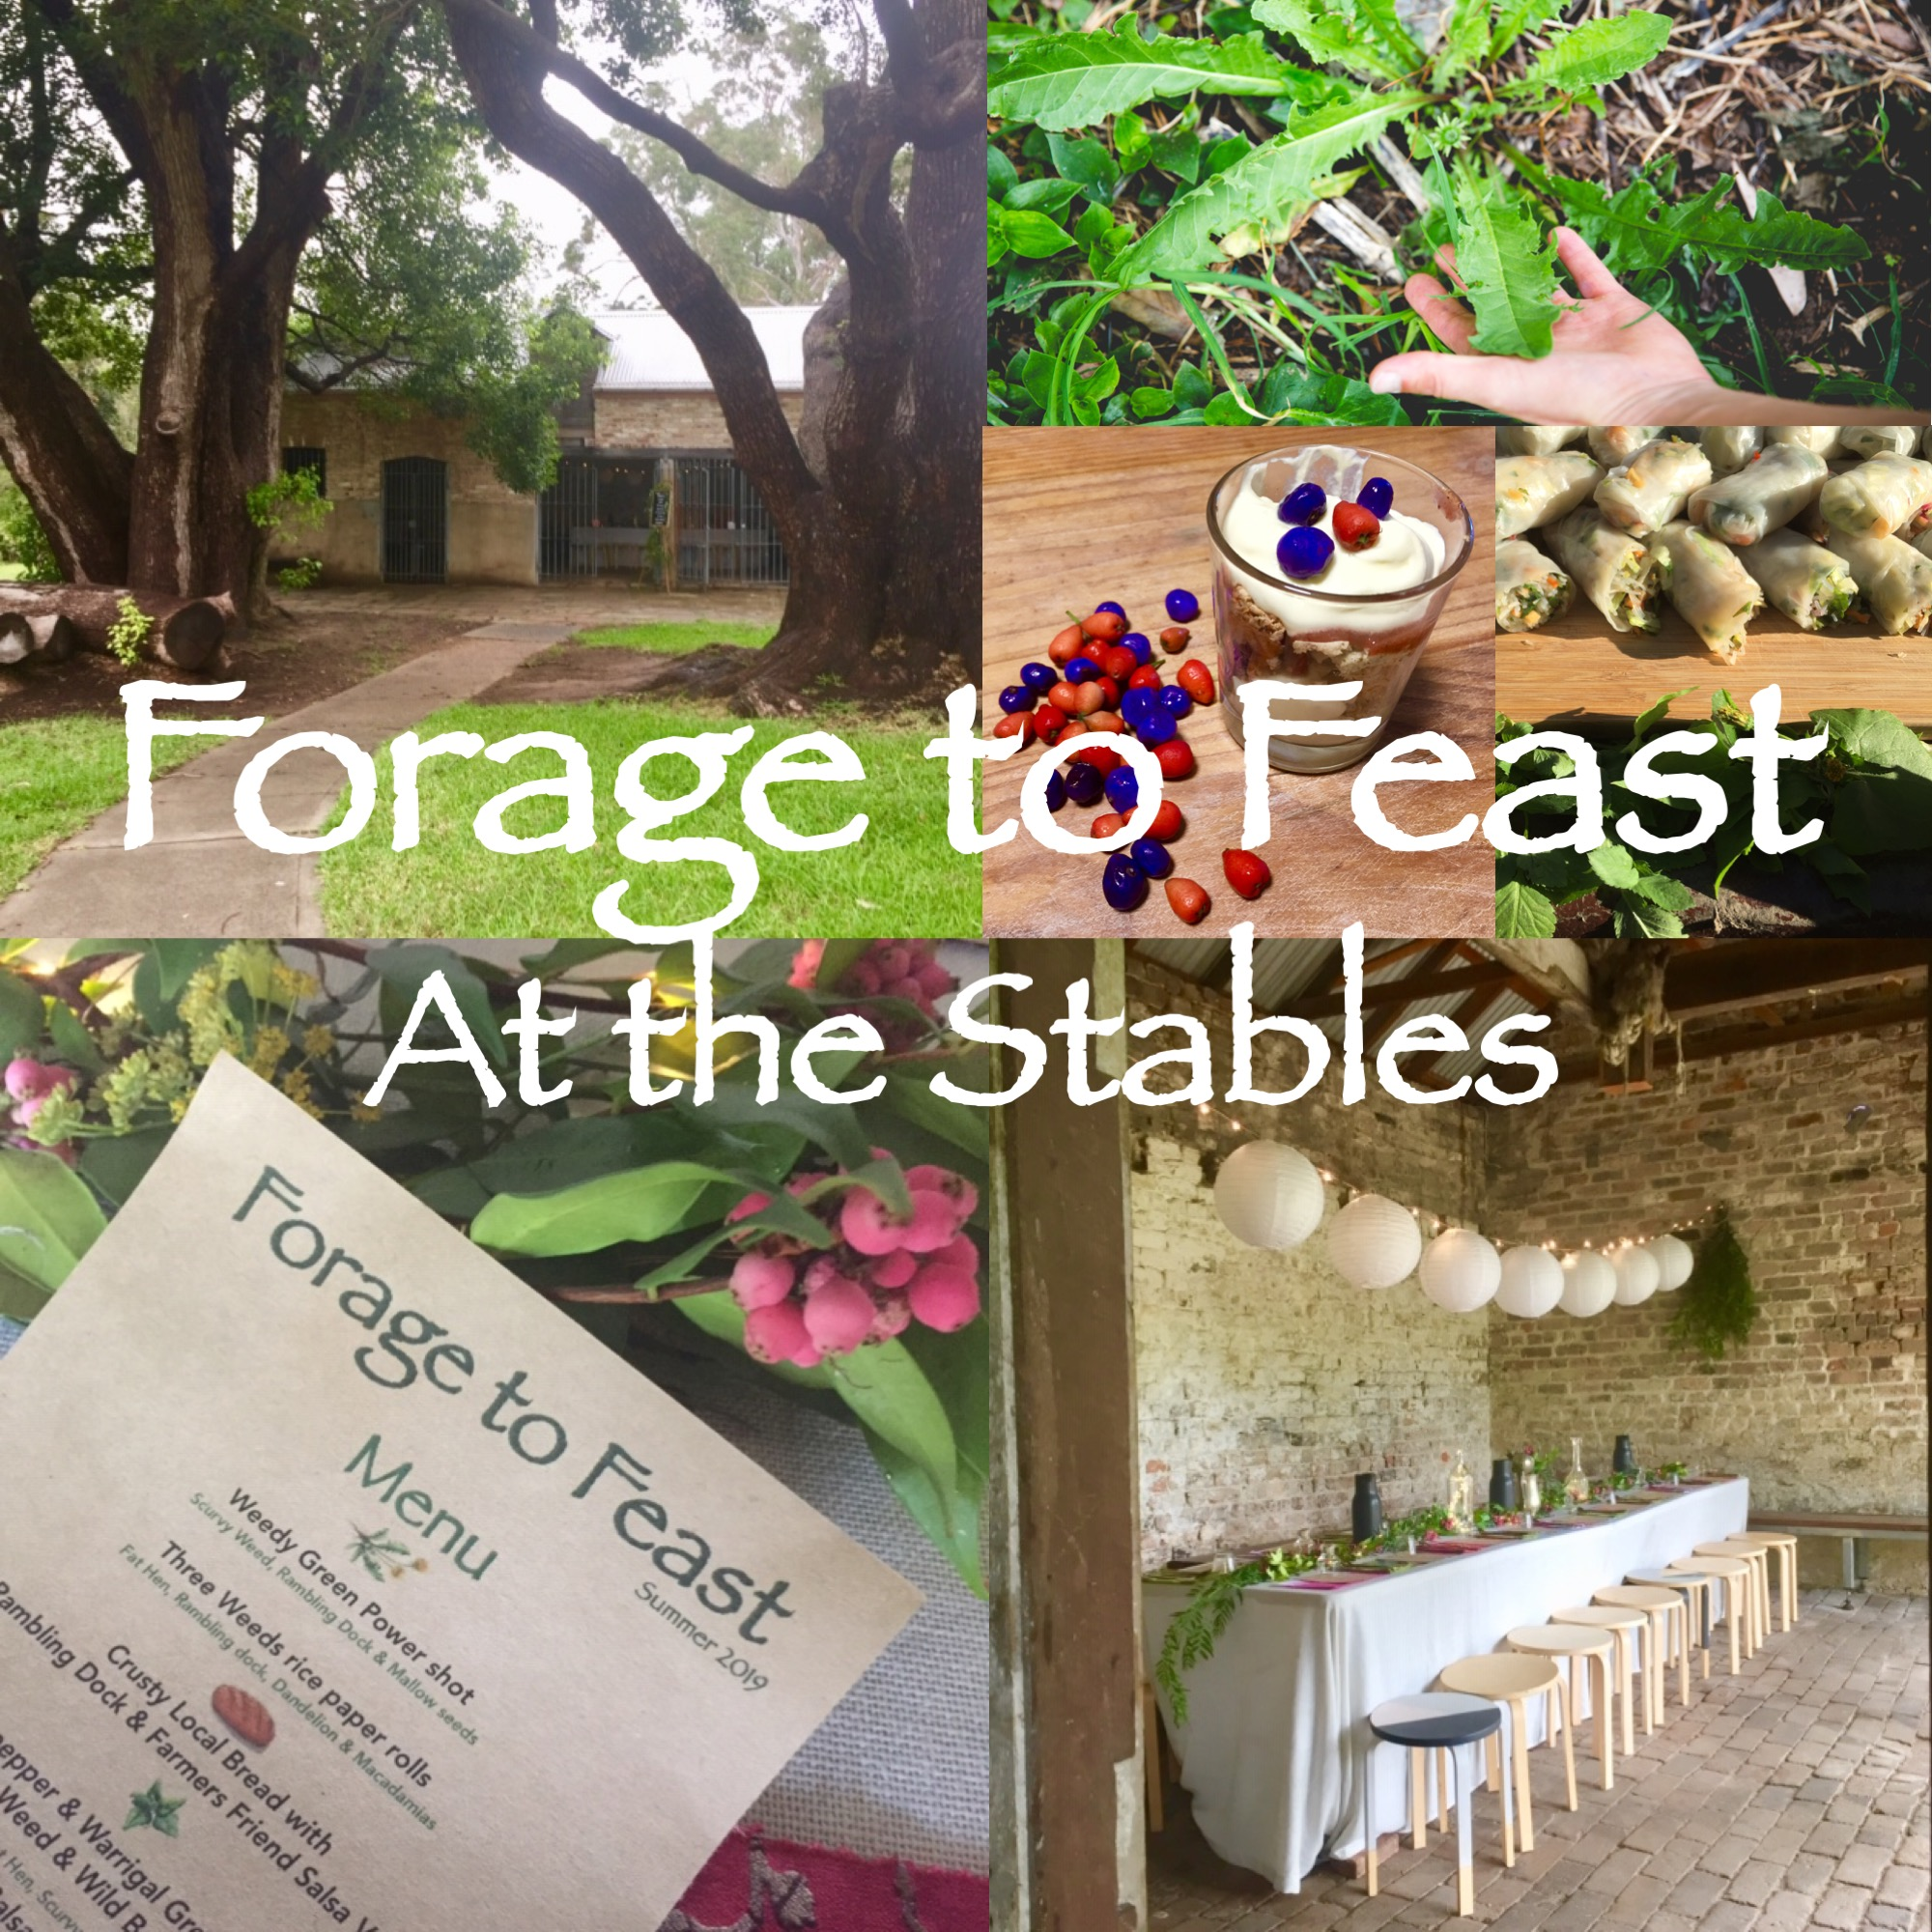 - WHEN: May 2018 WHERE: The Stables, Whites Creek, Sydney. WHAT: Workshop walk & sit down degustation FOR HOW MANY: 18 people COLLABORATORS: Diego Bonetto, providing ingredients from Wild Food Store and as one half of Forage to Feast creating a styled setting in a magical, heritage building. We feasted on a mini degustation utilizing foraged ingredients including many of the species learnt in the workshop.